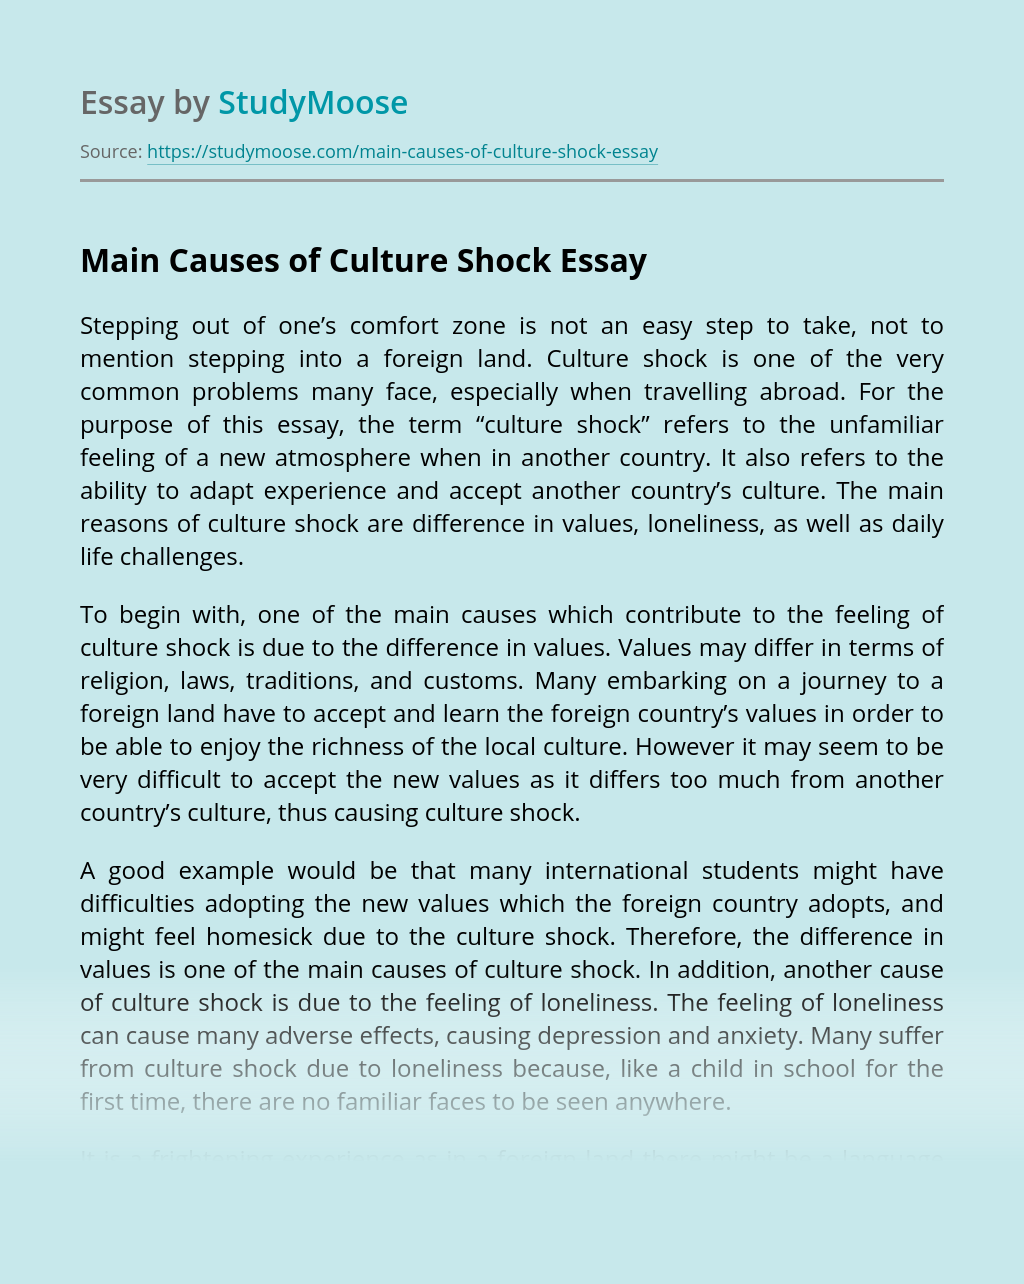 Main Causes of Culture Shock